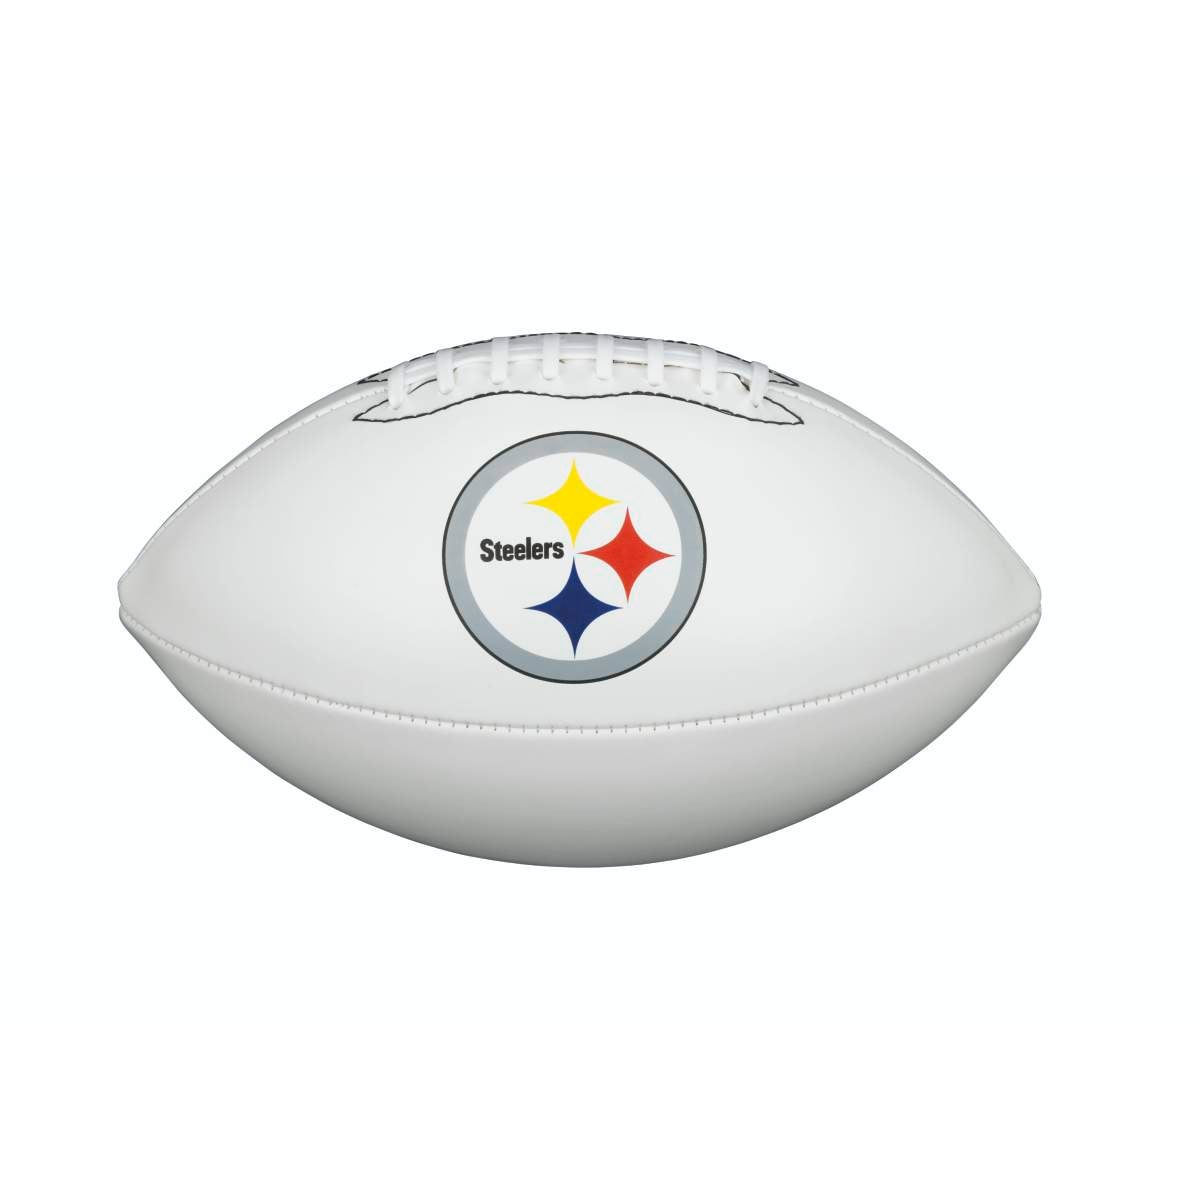 NFL TEAM LOGO AUTOGRAPH FOOTBALL - OFFICIAL, PITTSBURGH STEELERS